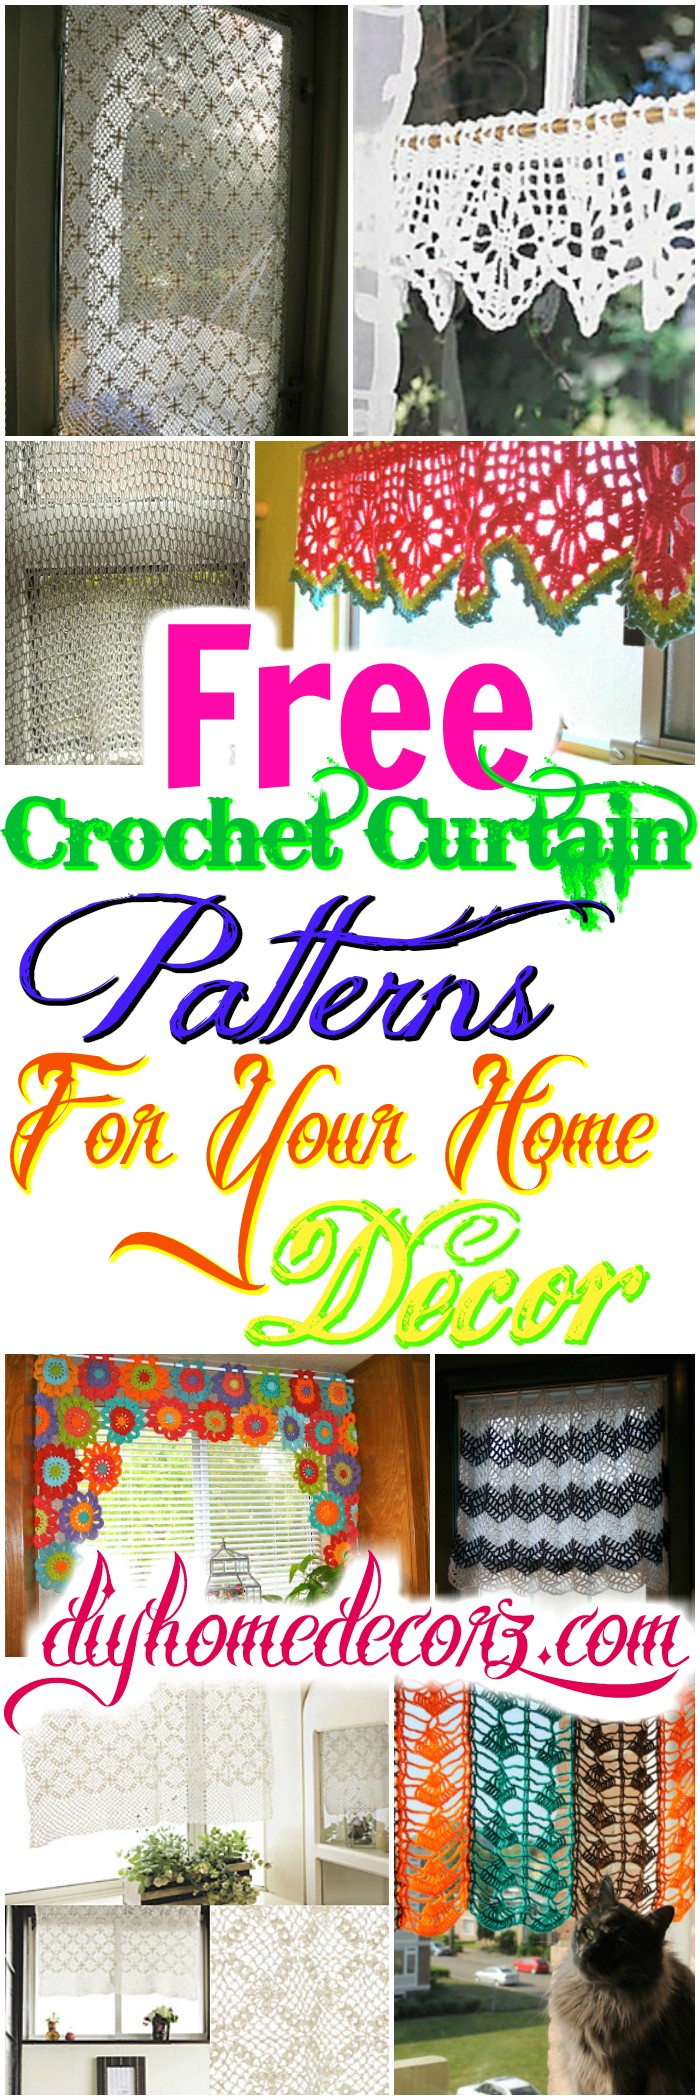 Crochet Curtain Patterns Free Crochet Curtain Patterns For Your Home Decor